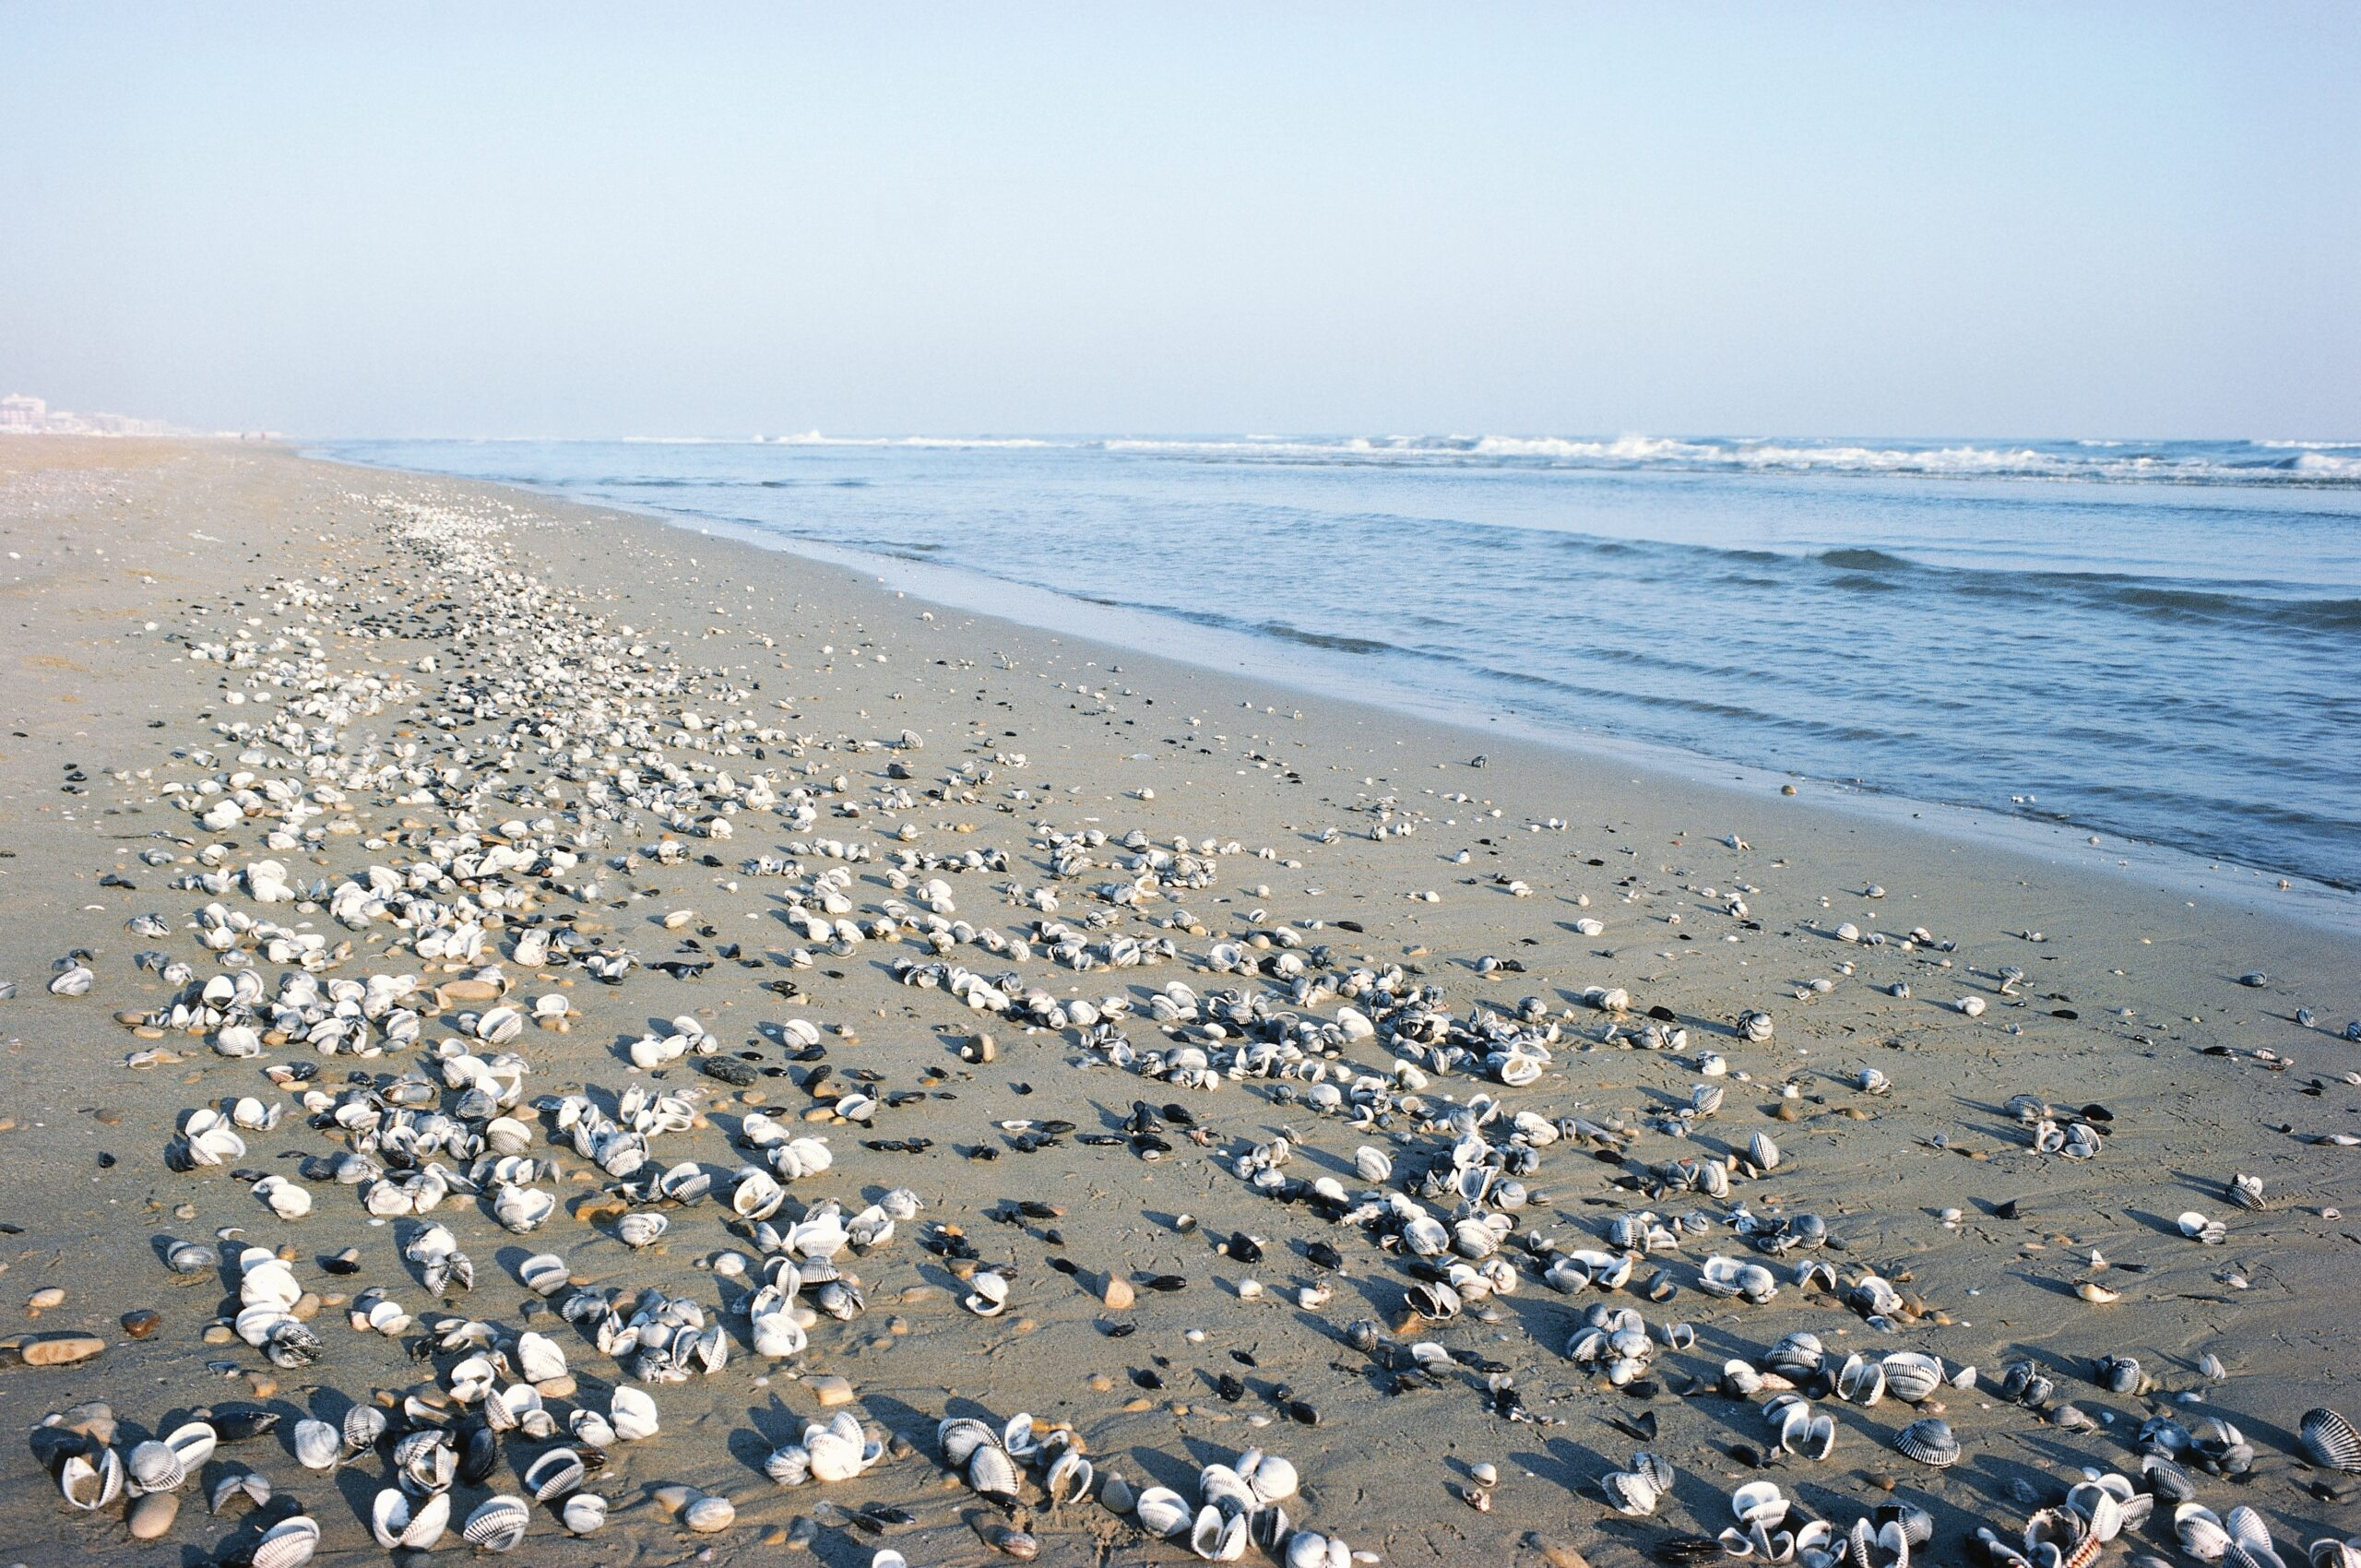 Shells on Riccione beach after a storm in Emilia-Romagna, Italy. Credit: DeAgostini/Getty Images